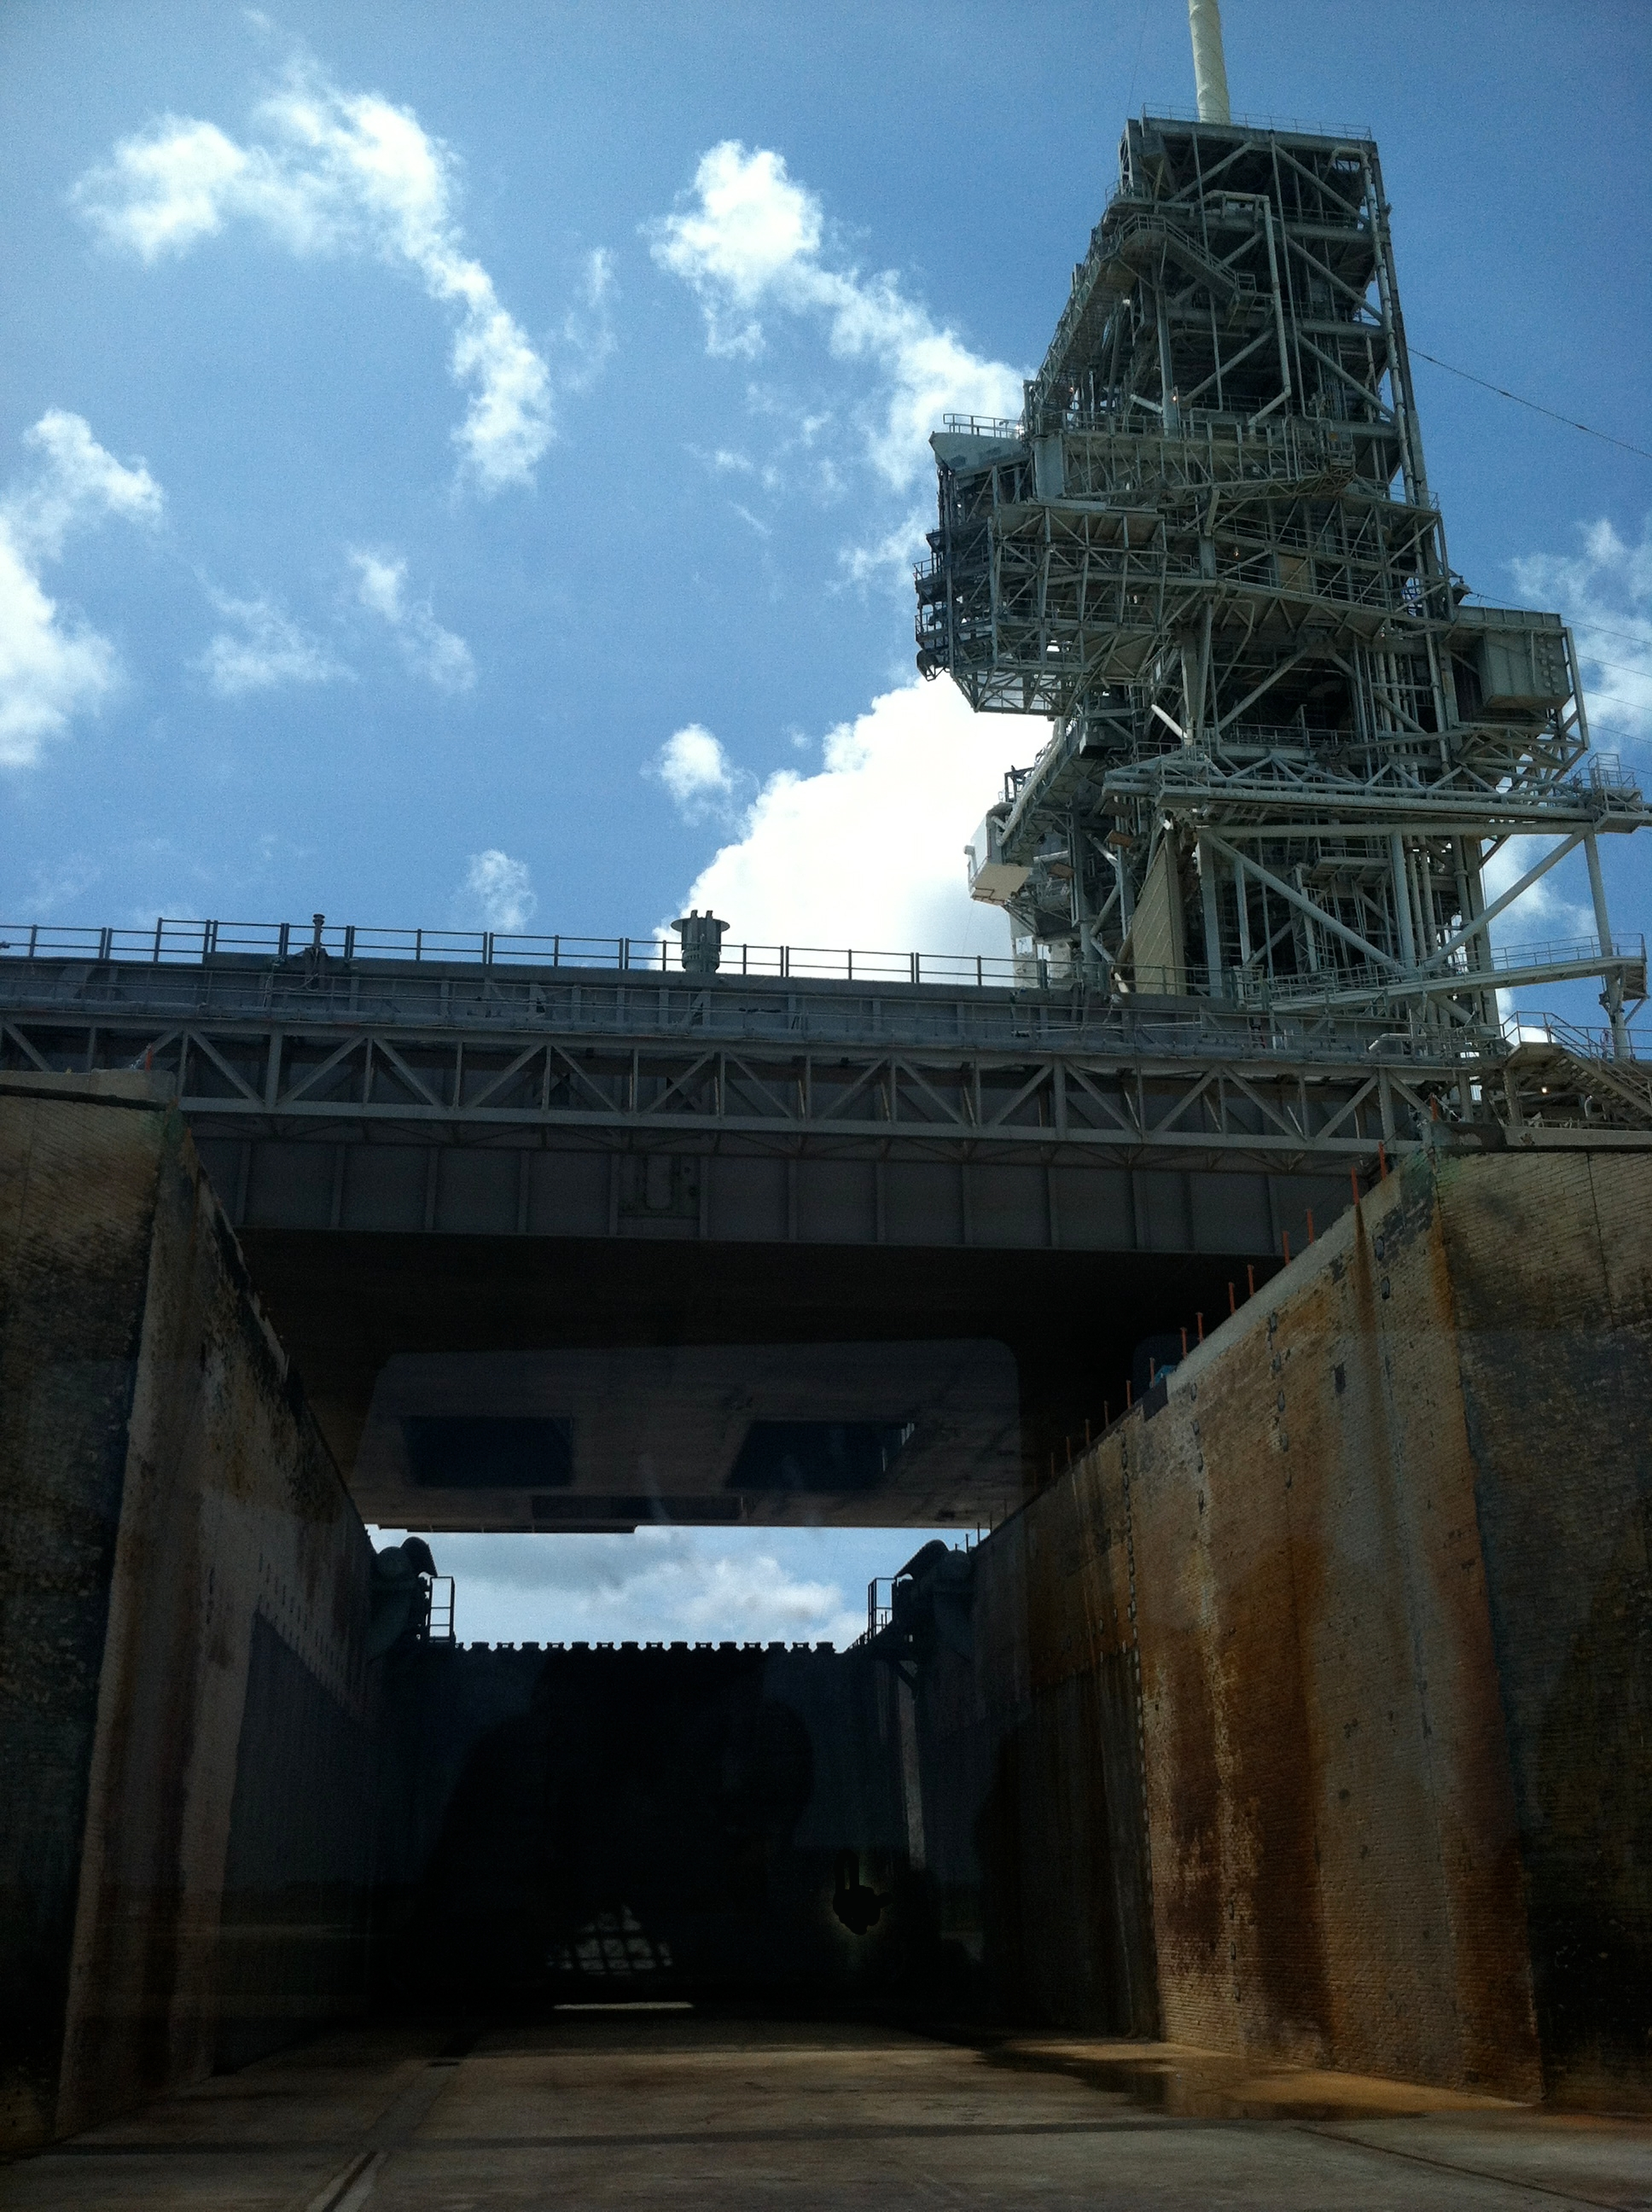 Cape Canaveral Launch Pad 39A Flame Trench